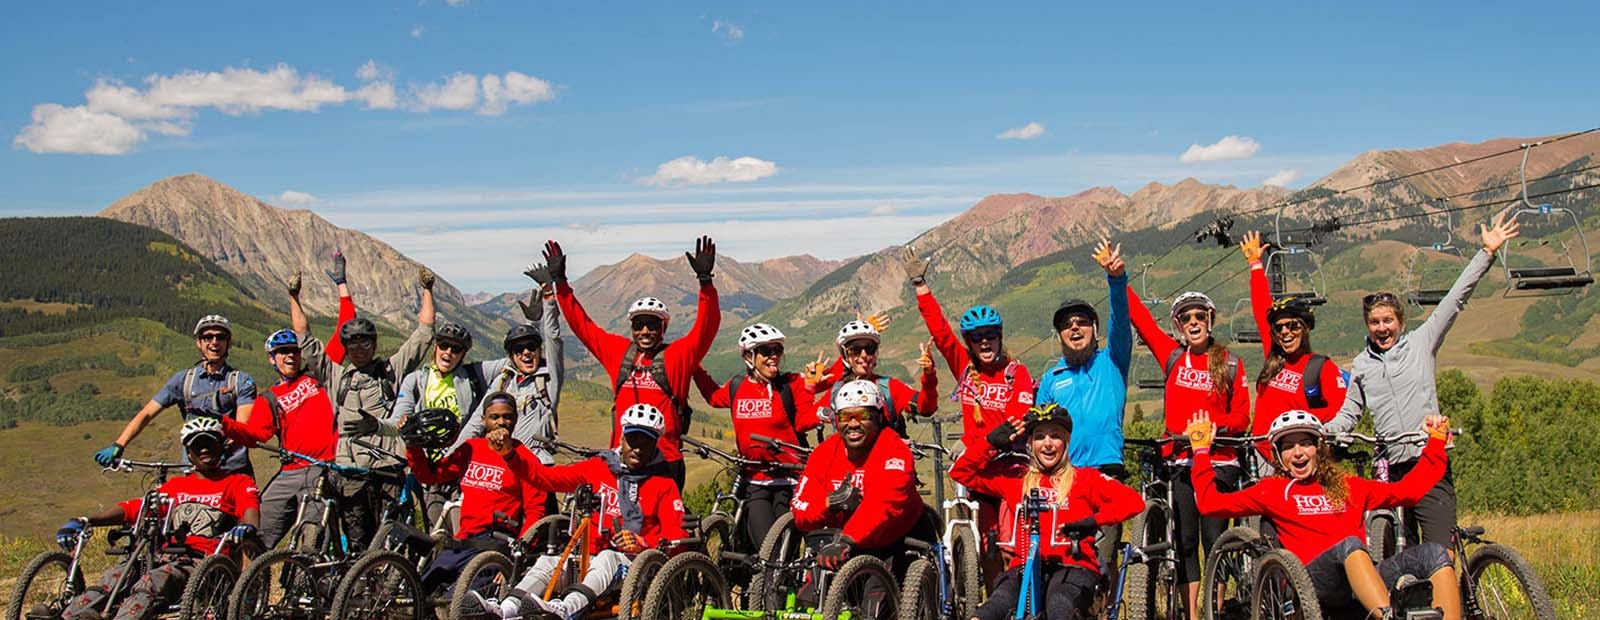 Group of adaptive cyclists on Mount Crested Butte